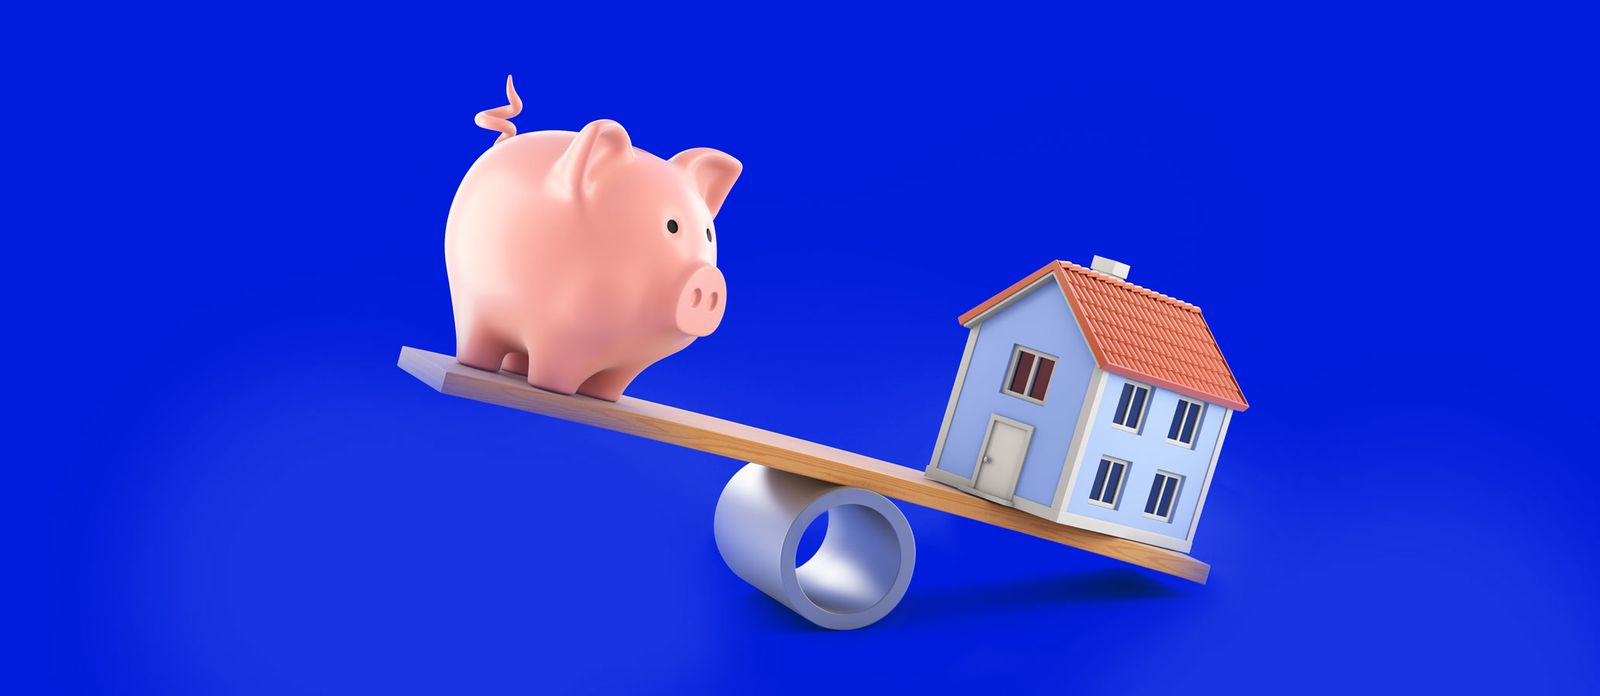 Piggy bank seesaw house. Should You Save for Retirement Or a House Down Payment?